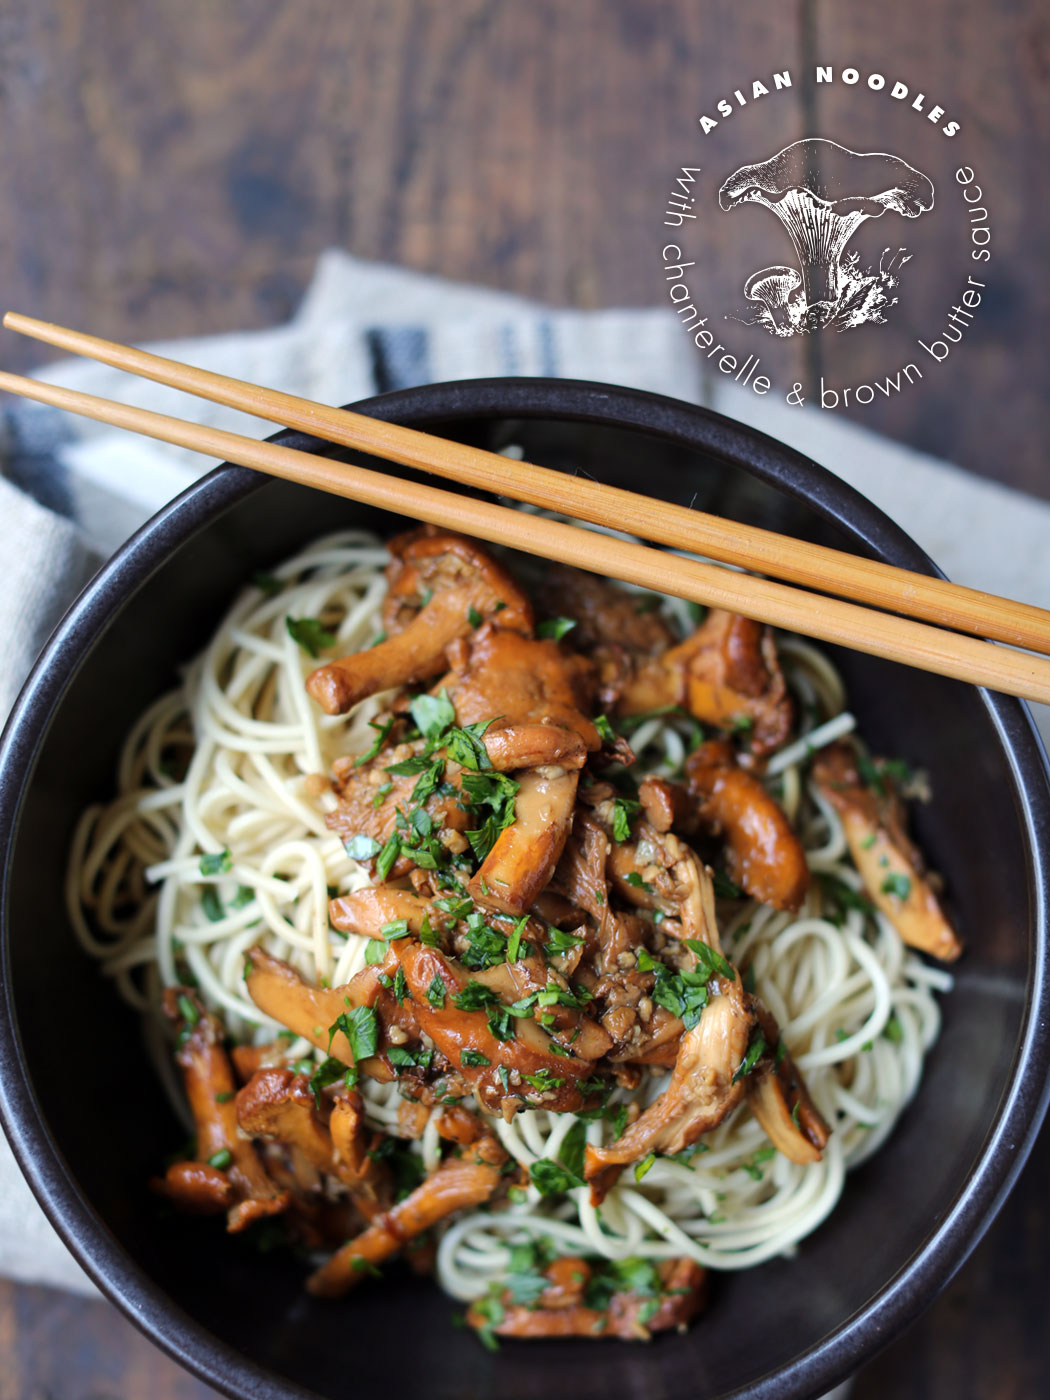 Asian Noodles with Chanterelle and Brown Butter Sauce